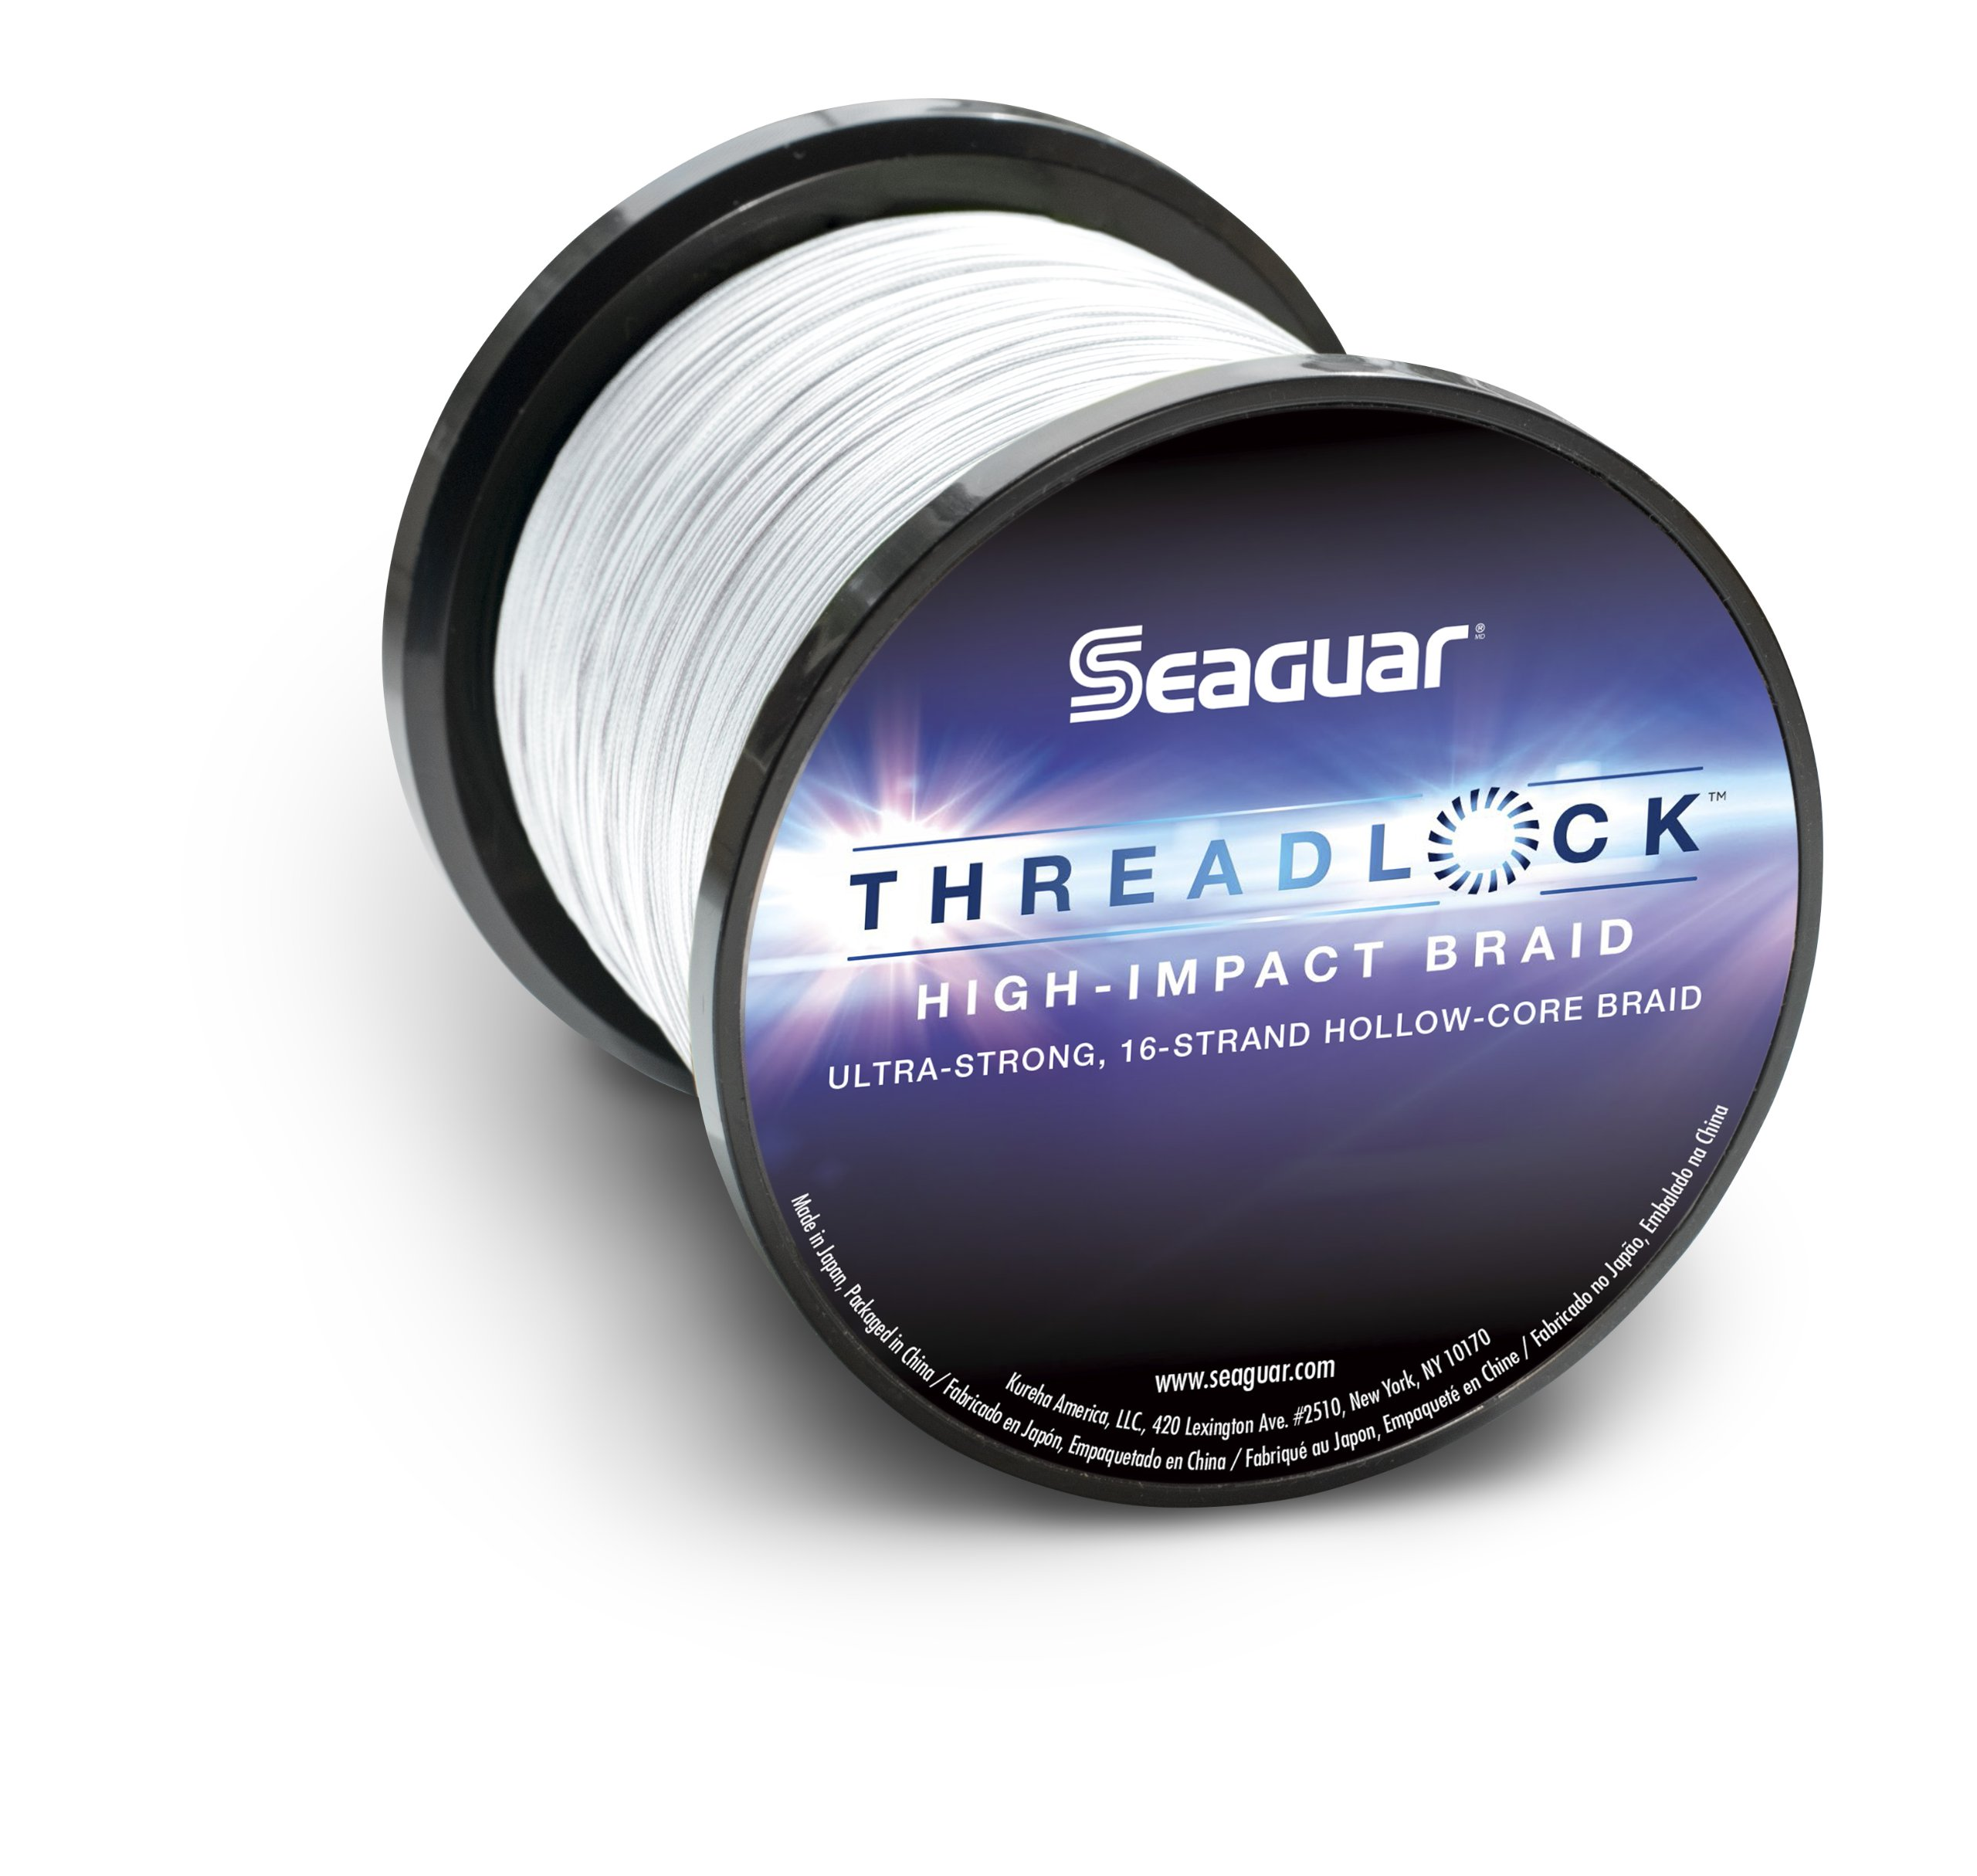 Seaguar  Threadlock Braided Fishing Line, Hi-Vis White, 80-Pound/600-Yard by Seaguar